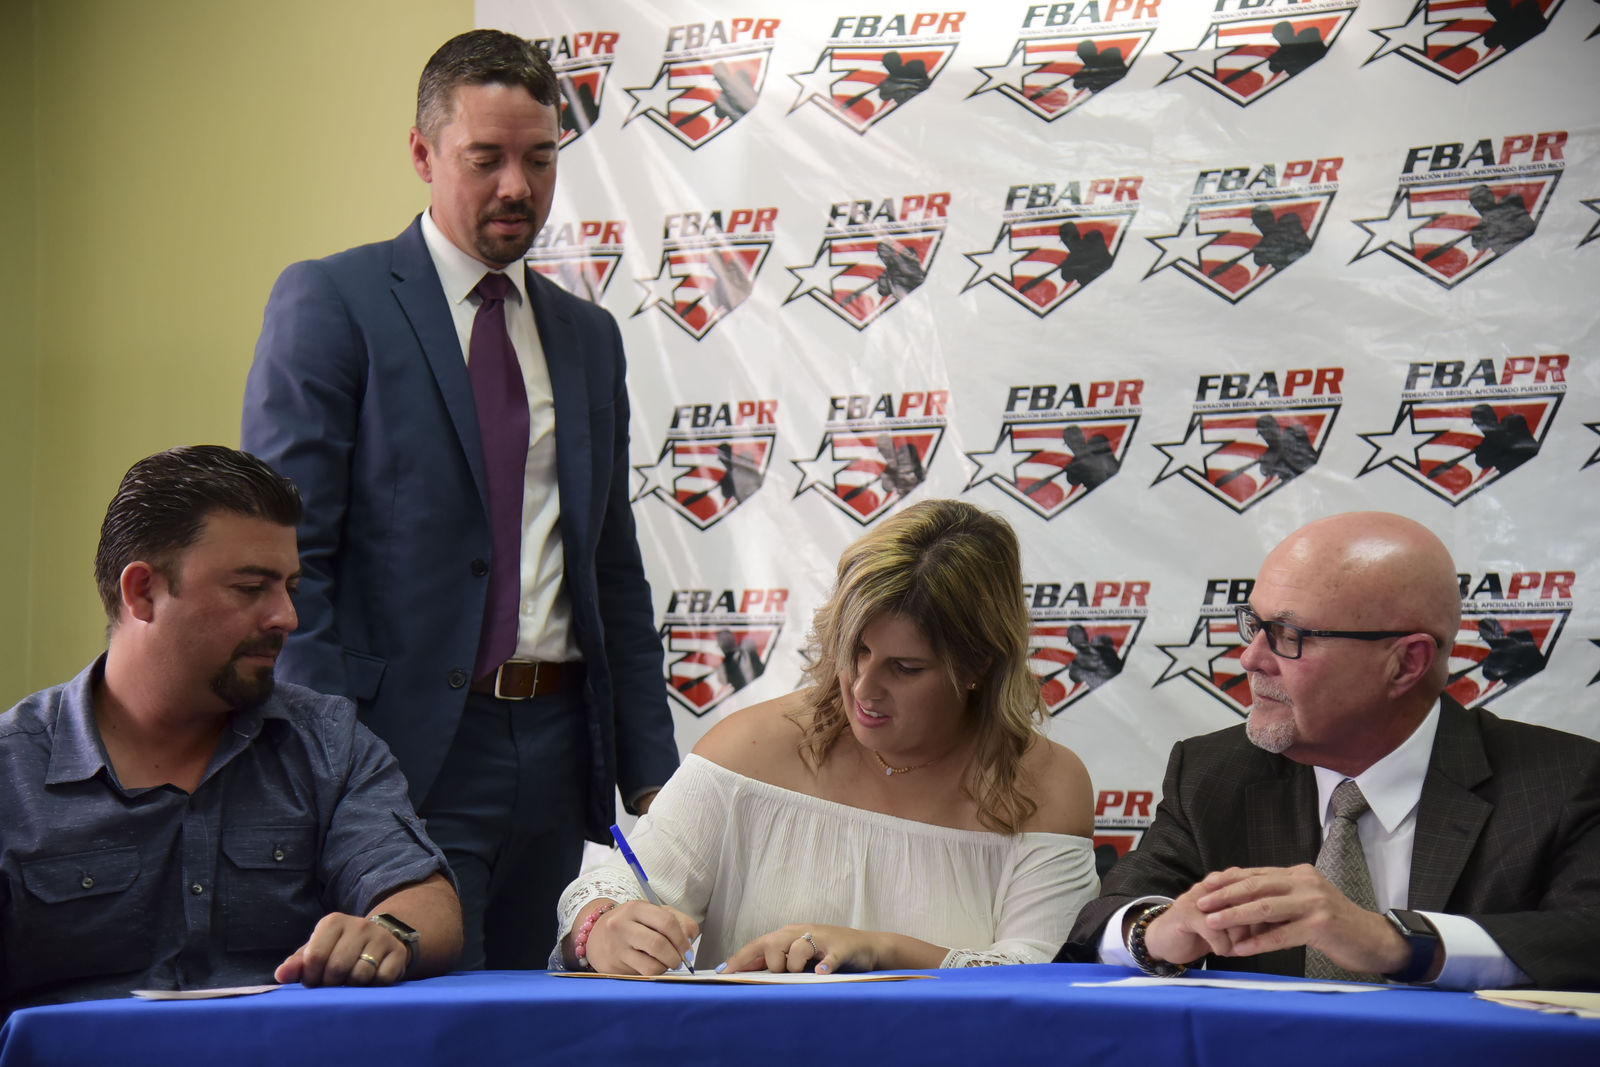 First baseman and member of the National Women's Baseball Team, Diamilette Quiles Alicea, center, signs with The Utuado Highlanders, one of the teams that participate in the Superior Double A Baseball League, in San Juan, Puerto Rico, Thursday, May 16, 2019.  Quiles Alicea signs the contract accompanied by Utuado mayor Ernesto Irizarry Salva, left, the representative of the Montaneses of Utuado Rafael Juarbe, second left, and the president of the Federation, Dr. Jose Quiles Rosas. (AP Photo/Carlos Giusti)